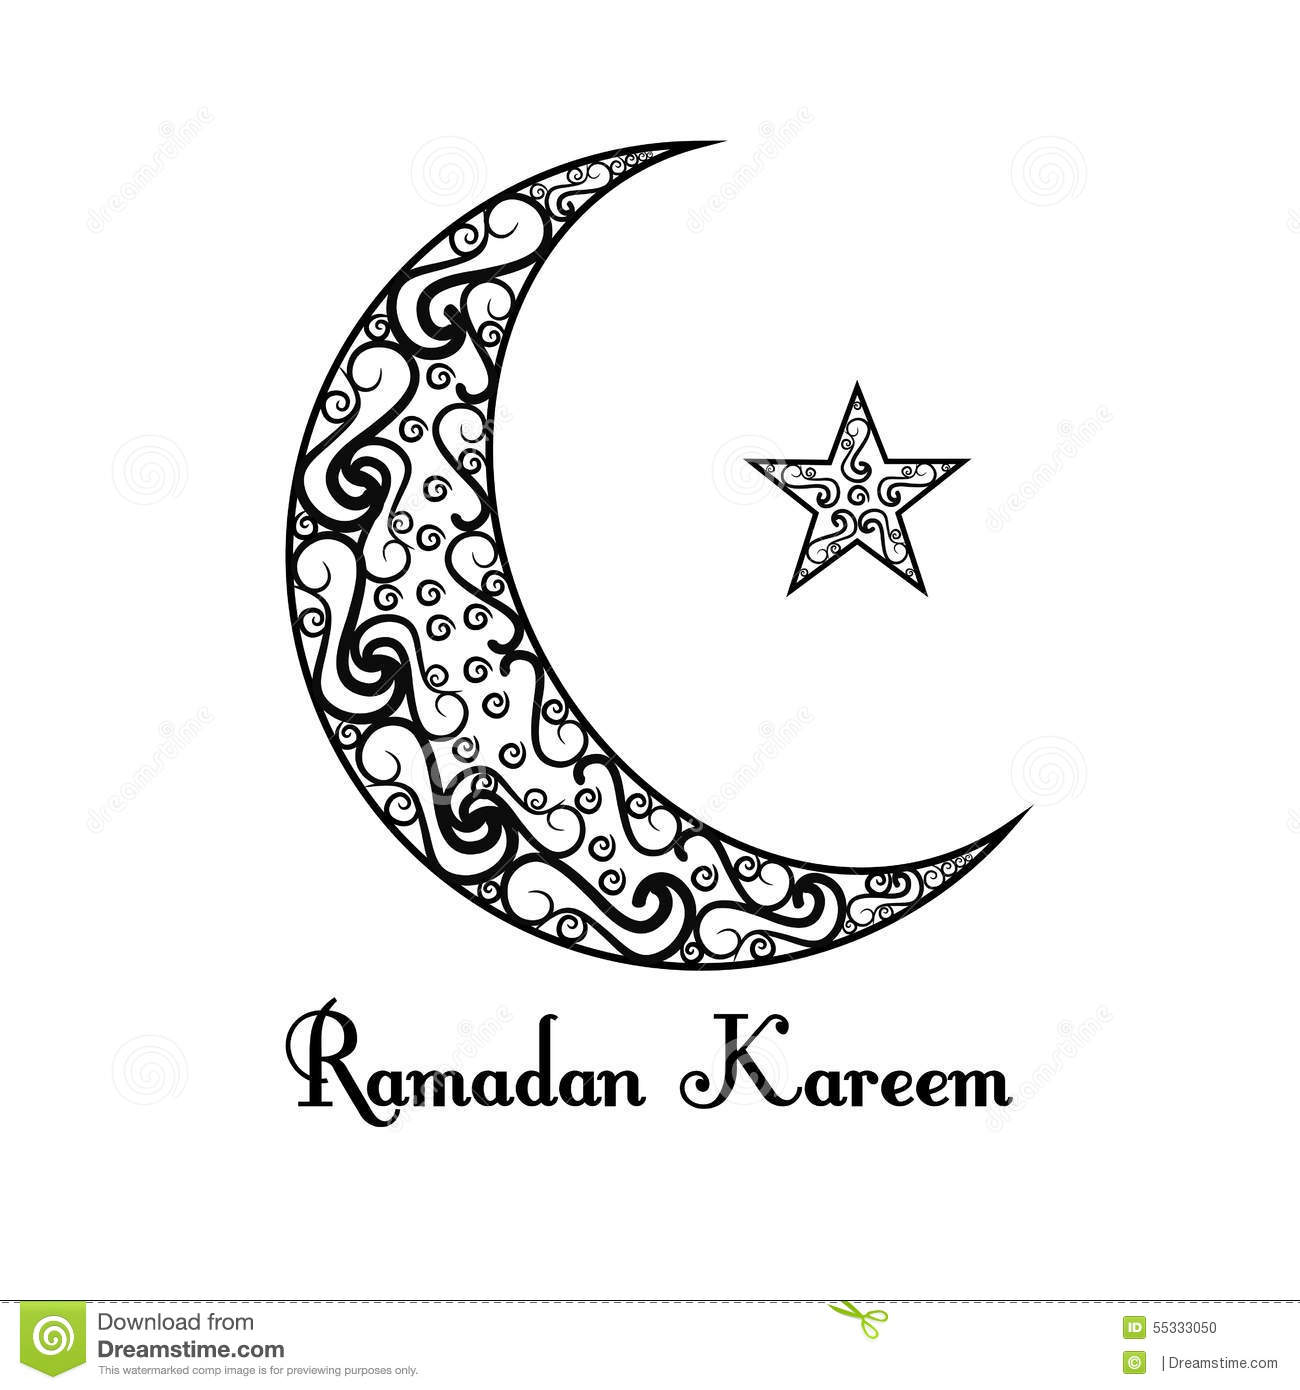 Full Moon Drawing Black And White Black White Moon Star Poster White Background Ramadan